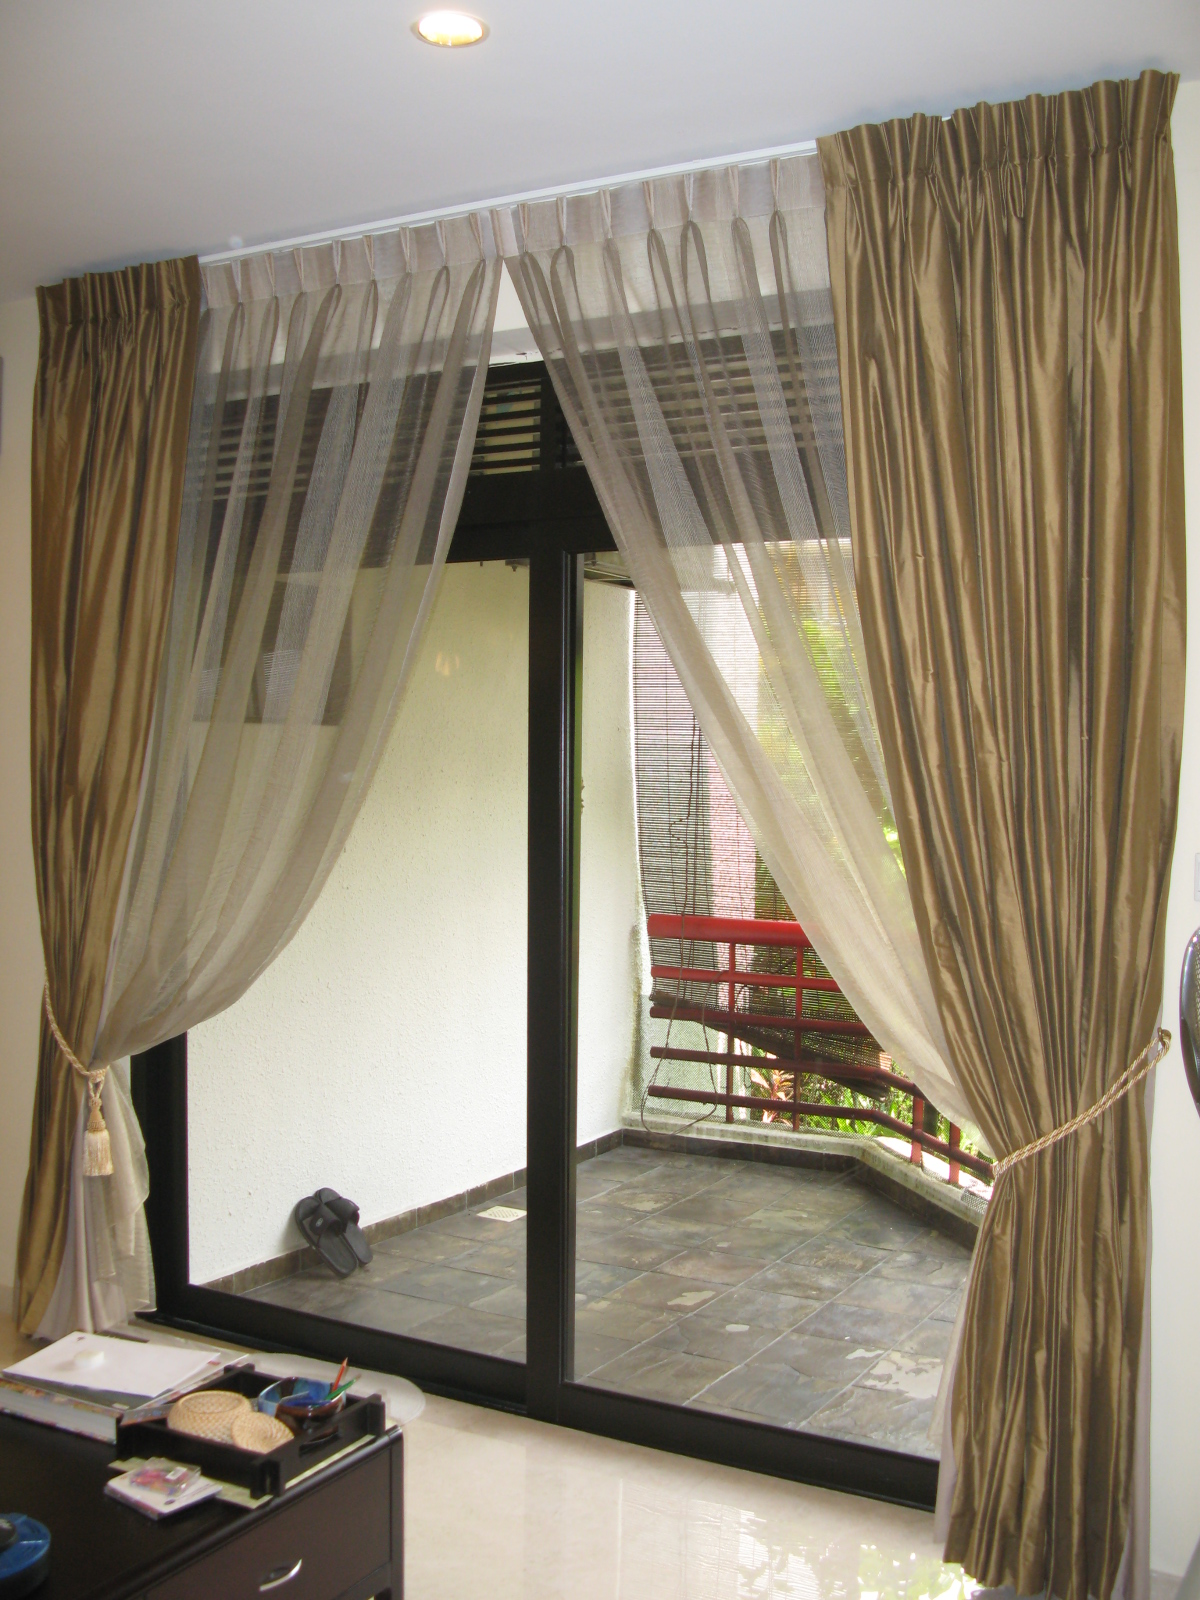 Curtain Designs Ideas: Future House Design: Stylish Interior With Window Curtain